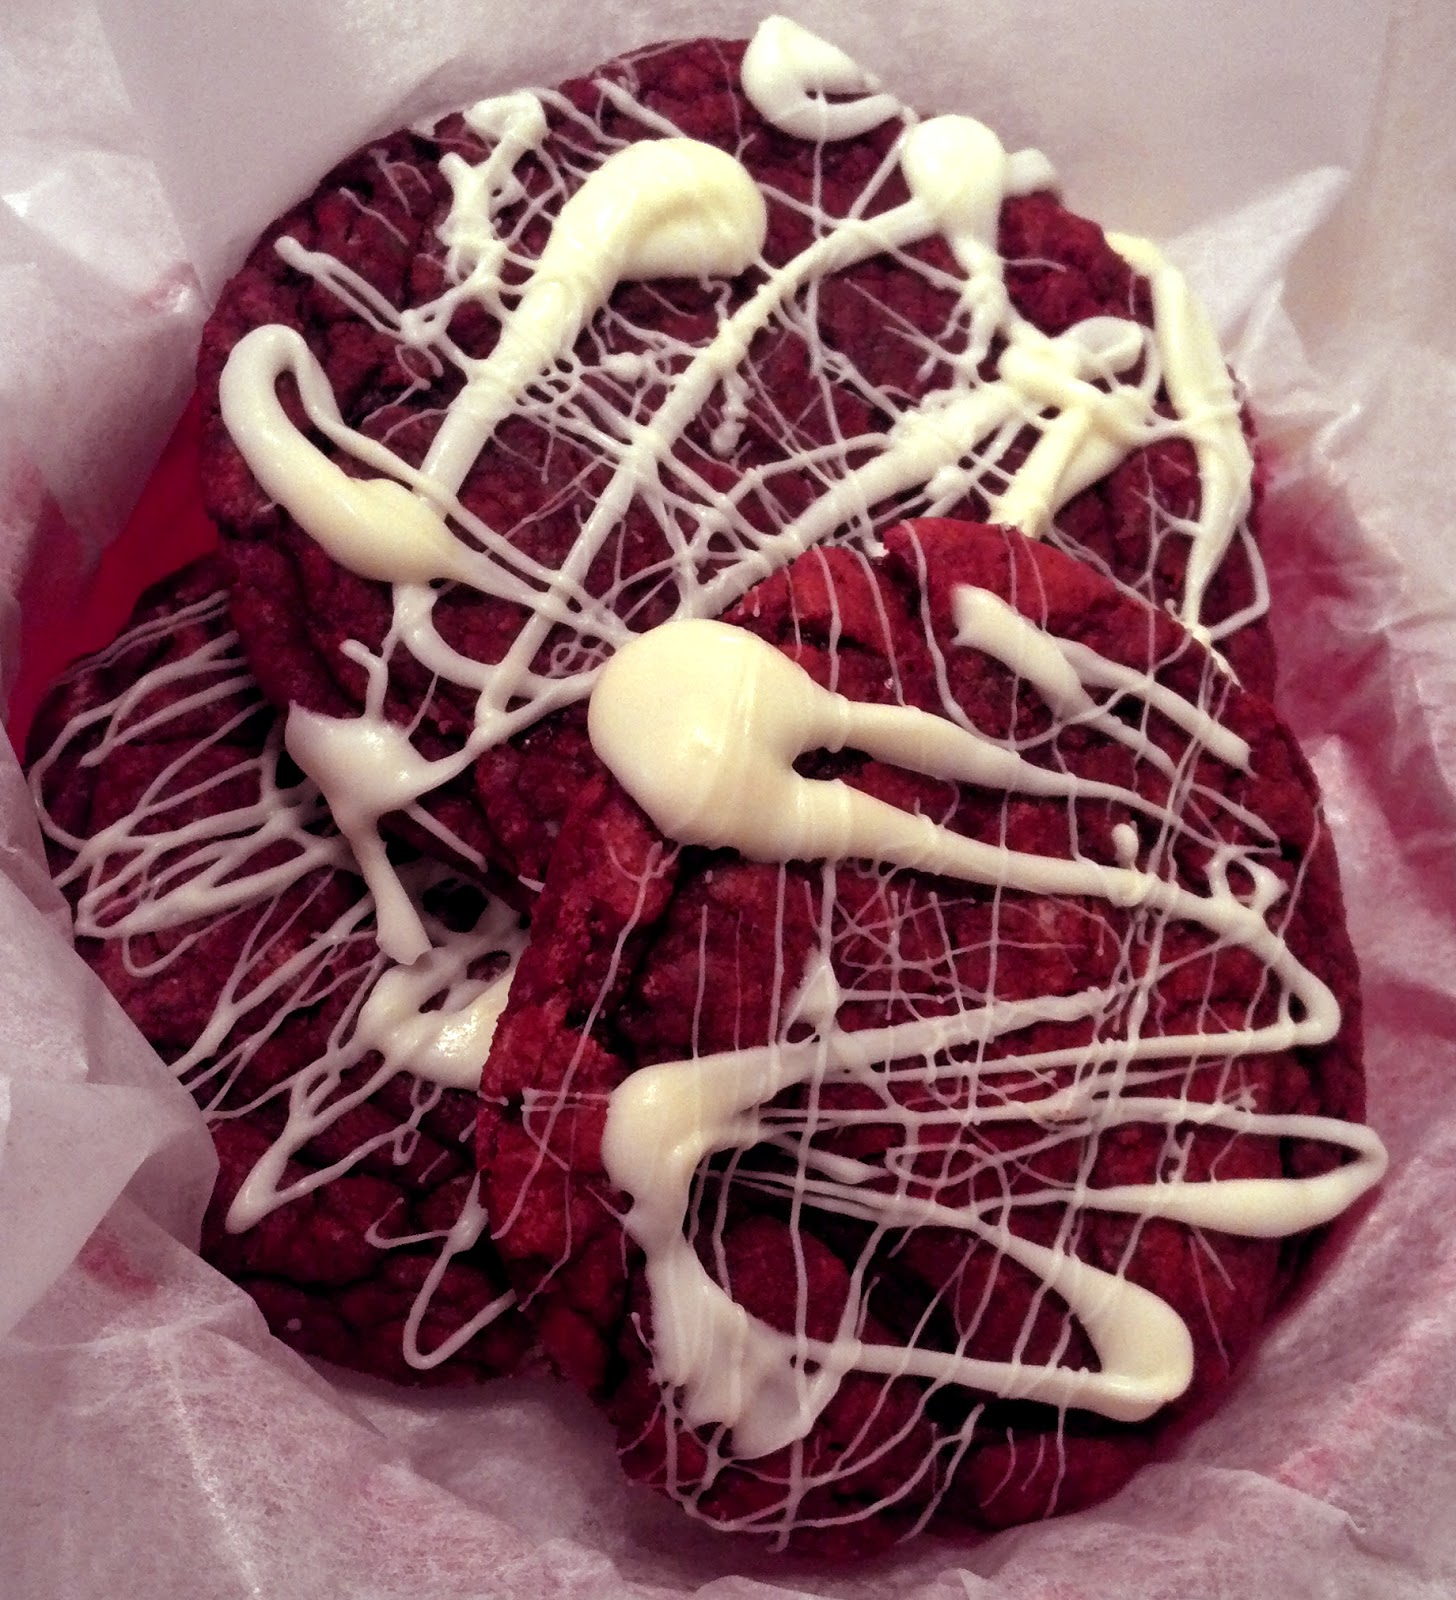 The Sorority Girl: Red Velvet Cheesecake Cookies